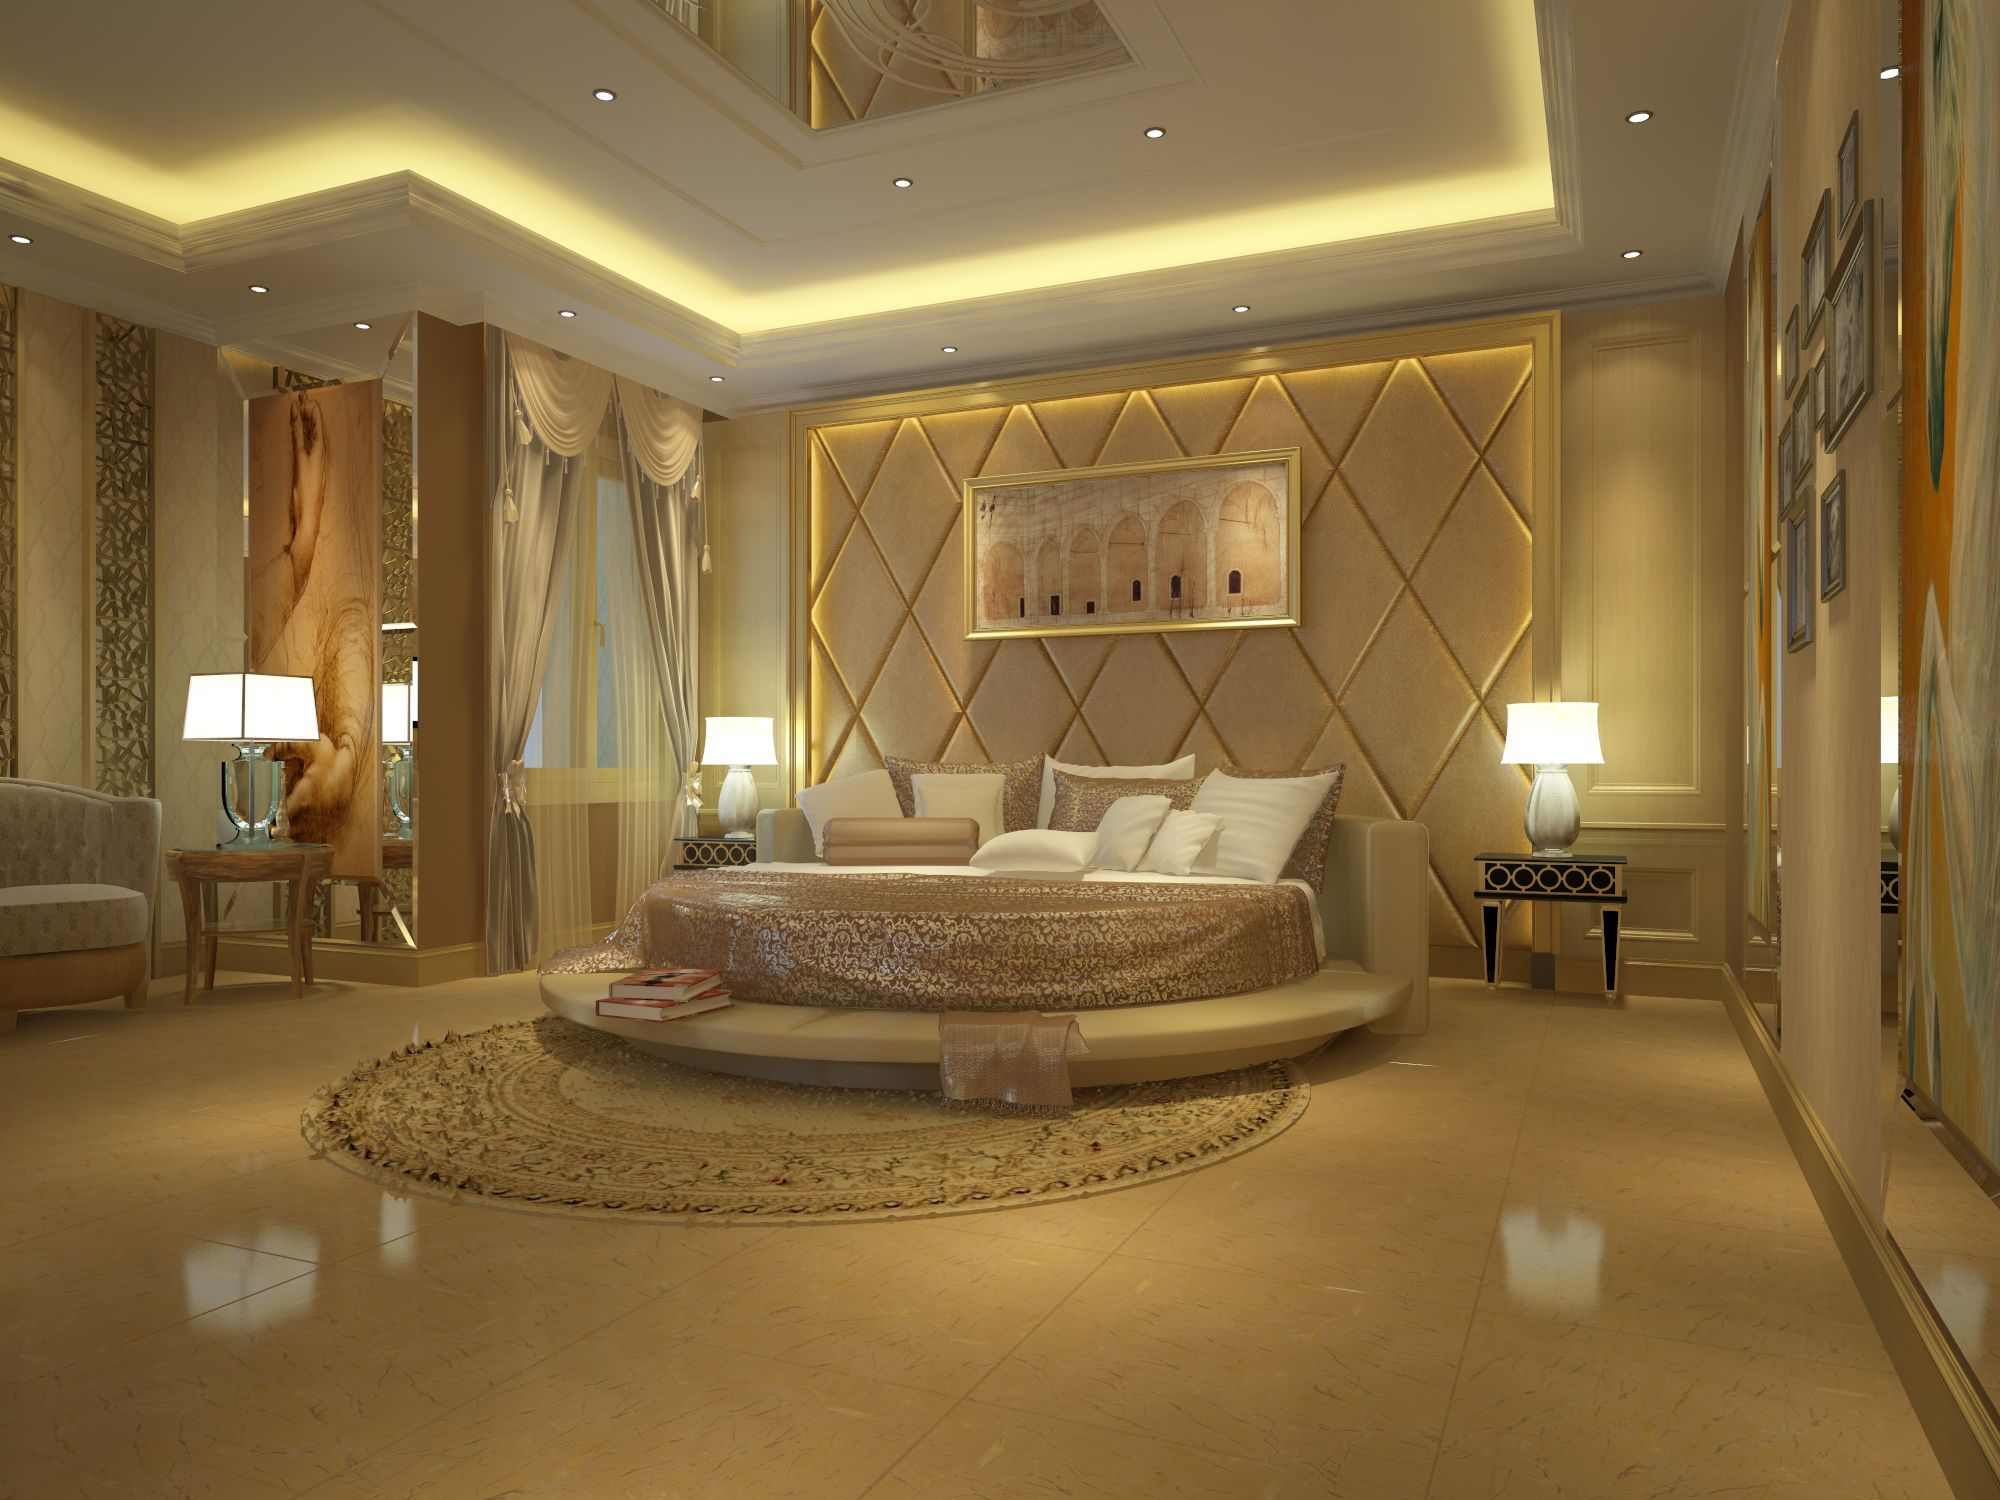 Modern master bedroom ceiling designs - 30 Romantic Master Bedroom Designs